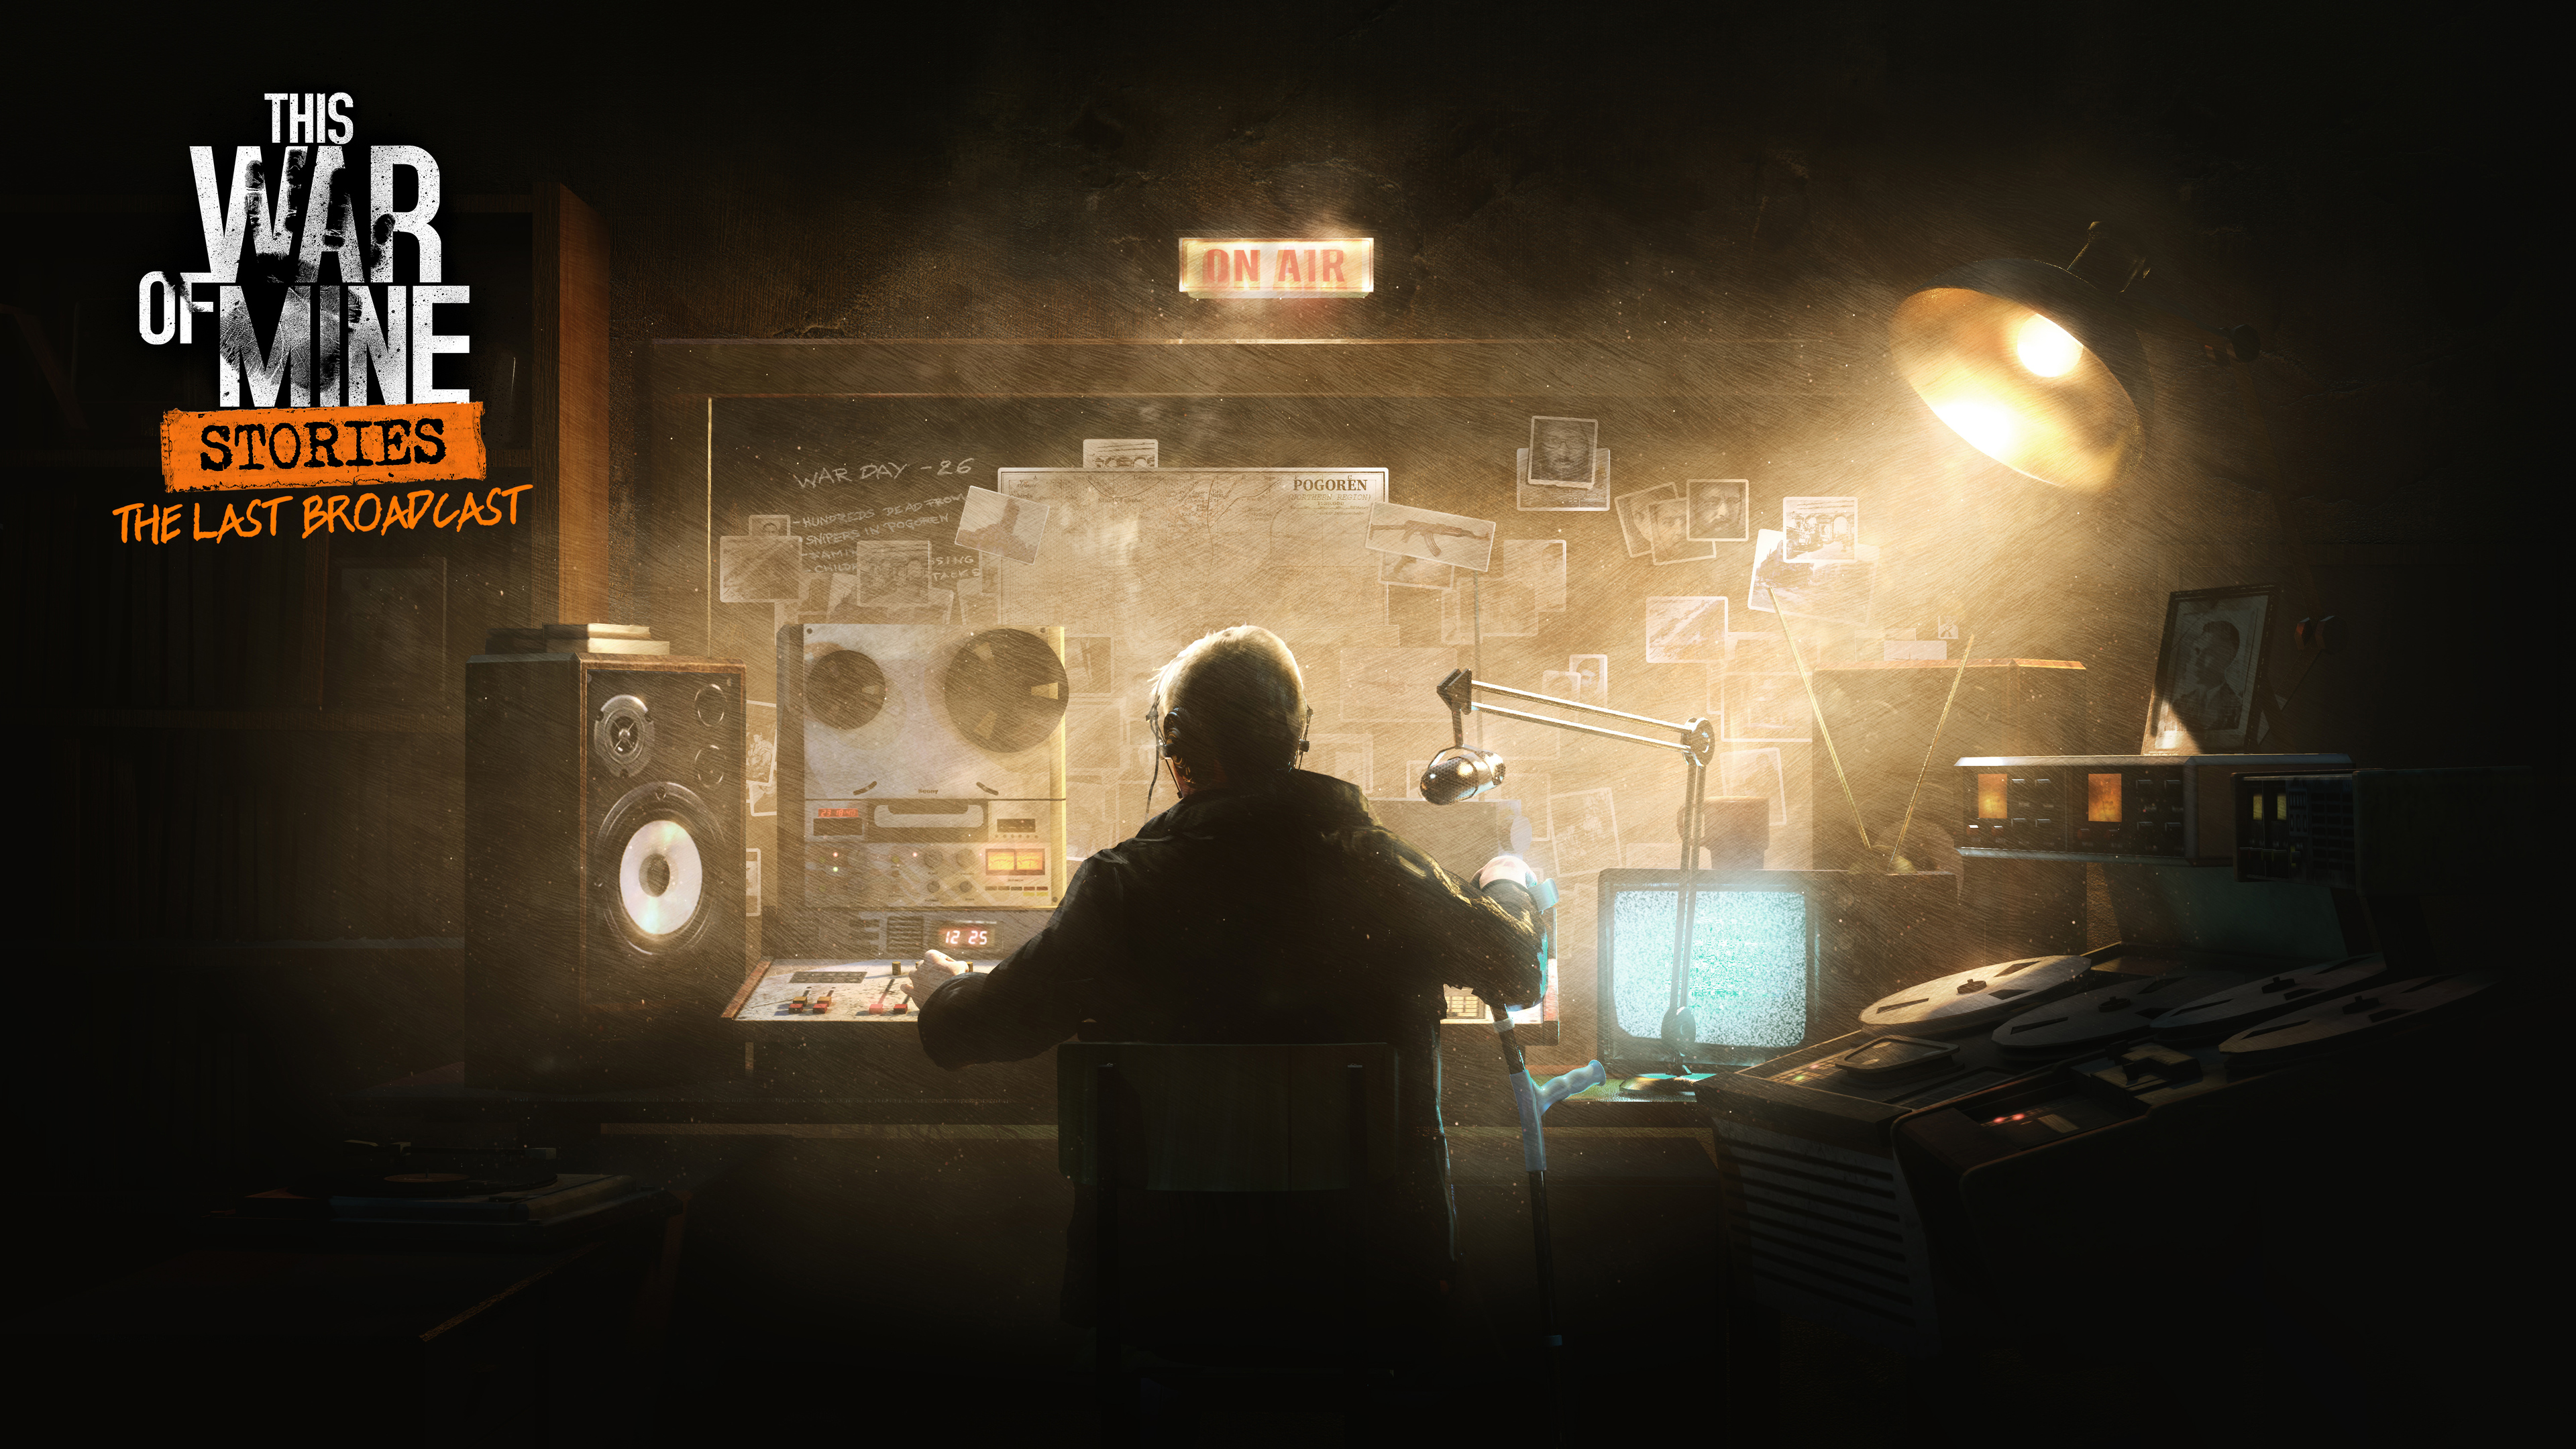 this war of mine stories the last broadcast key art 2018 1543621192 - This War Of Mine Stories The Last Broadcast Key Art 2018 - hd-wallpapers, games wallpapers, 4k-wallpapers, 2018 games wallpapers